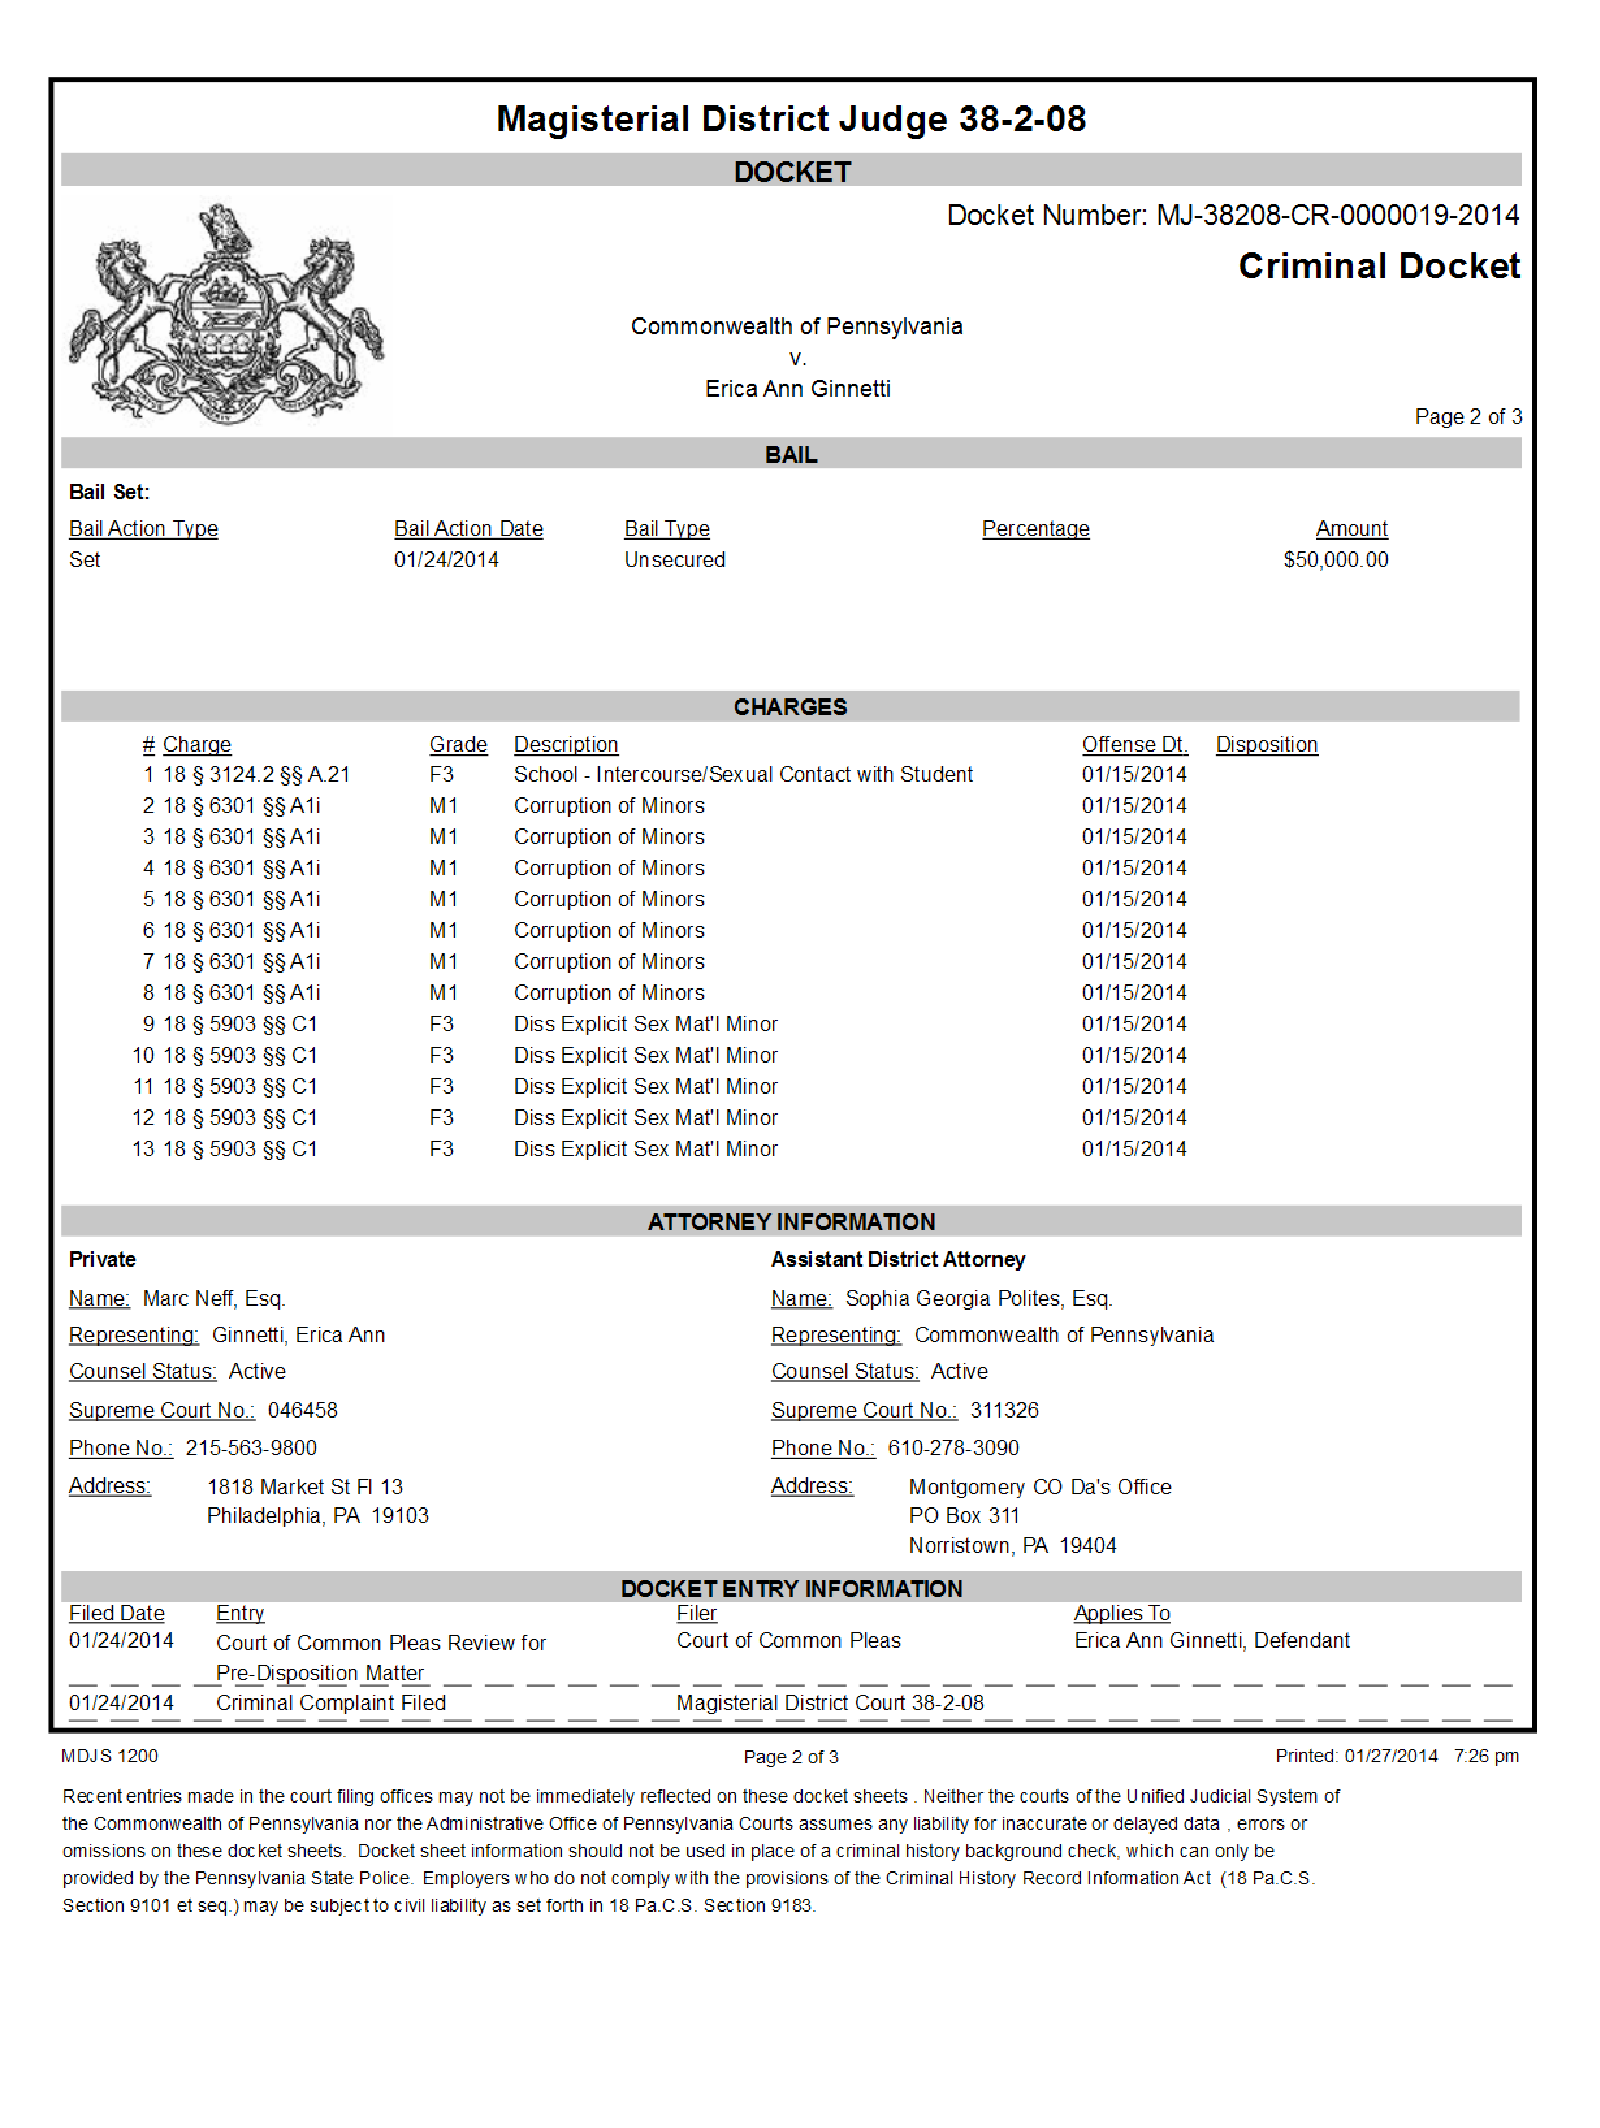 Copy of Ginnetti Erica Ann Criminal Docket2.png